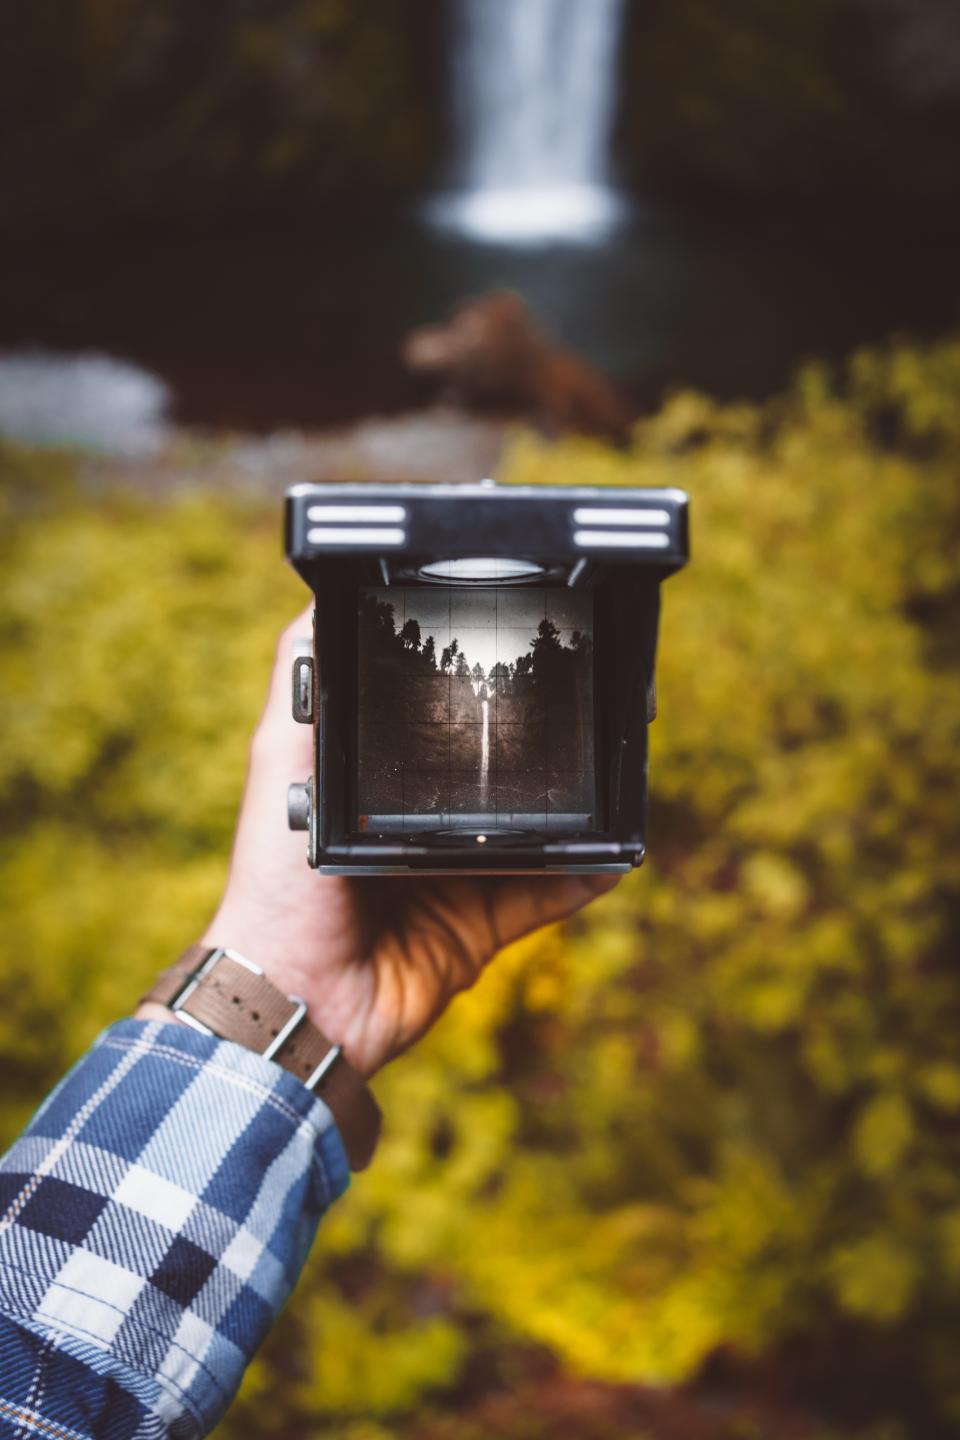 camera photography photo photographer people hands old vintage film green leaves plant trees falls nature water checkered flannel accessories watch